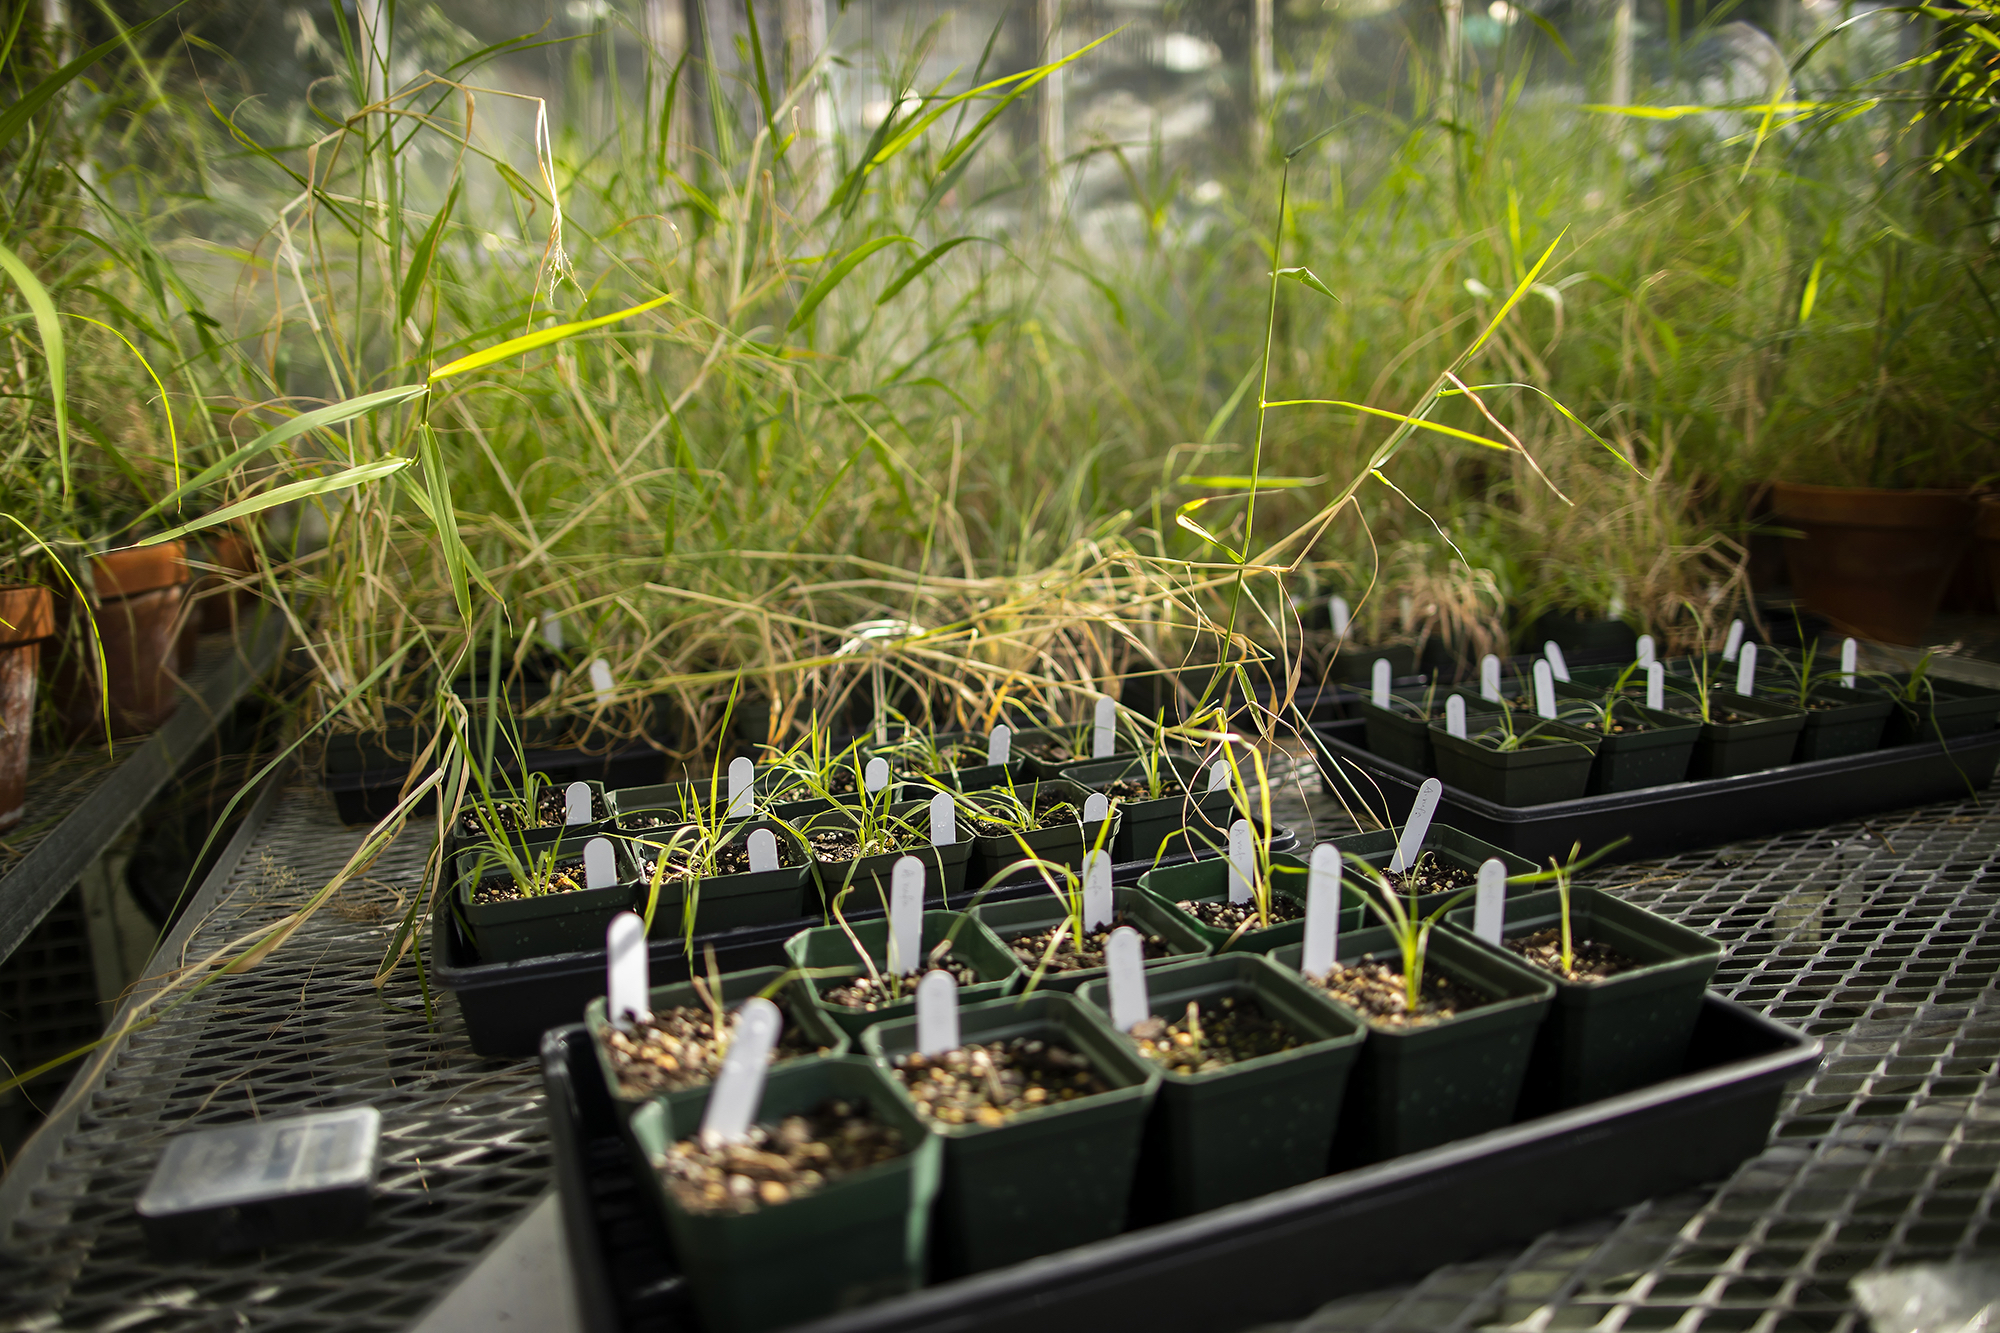 Dry Conditions May Have Helped A New Type Of Plant Gain